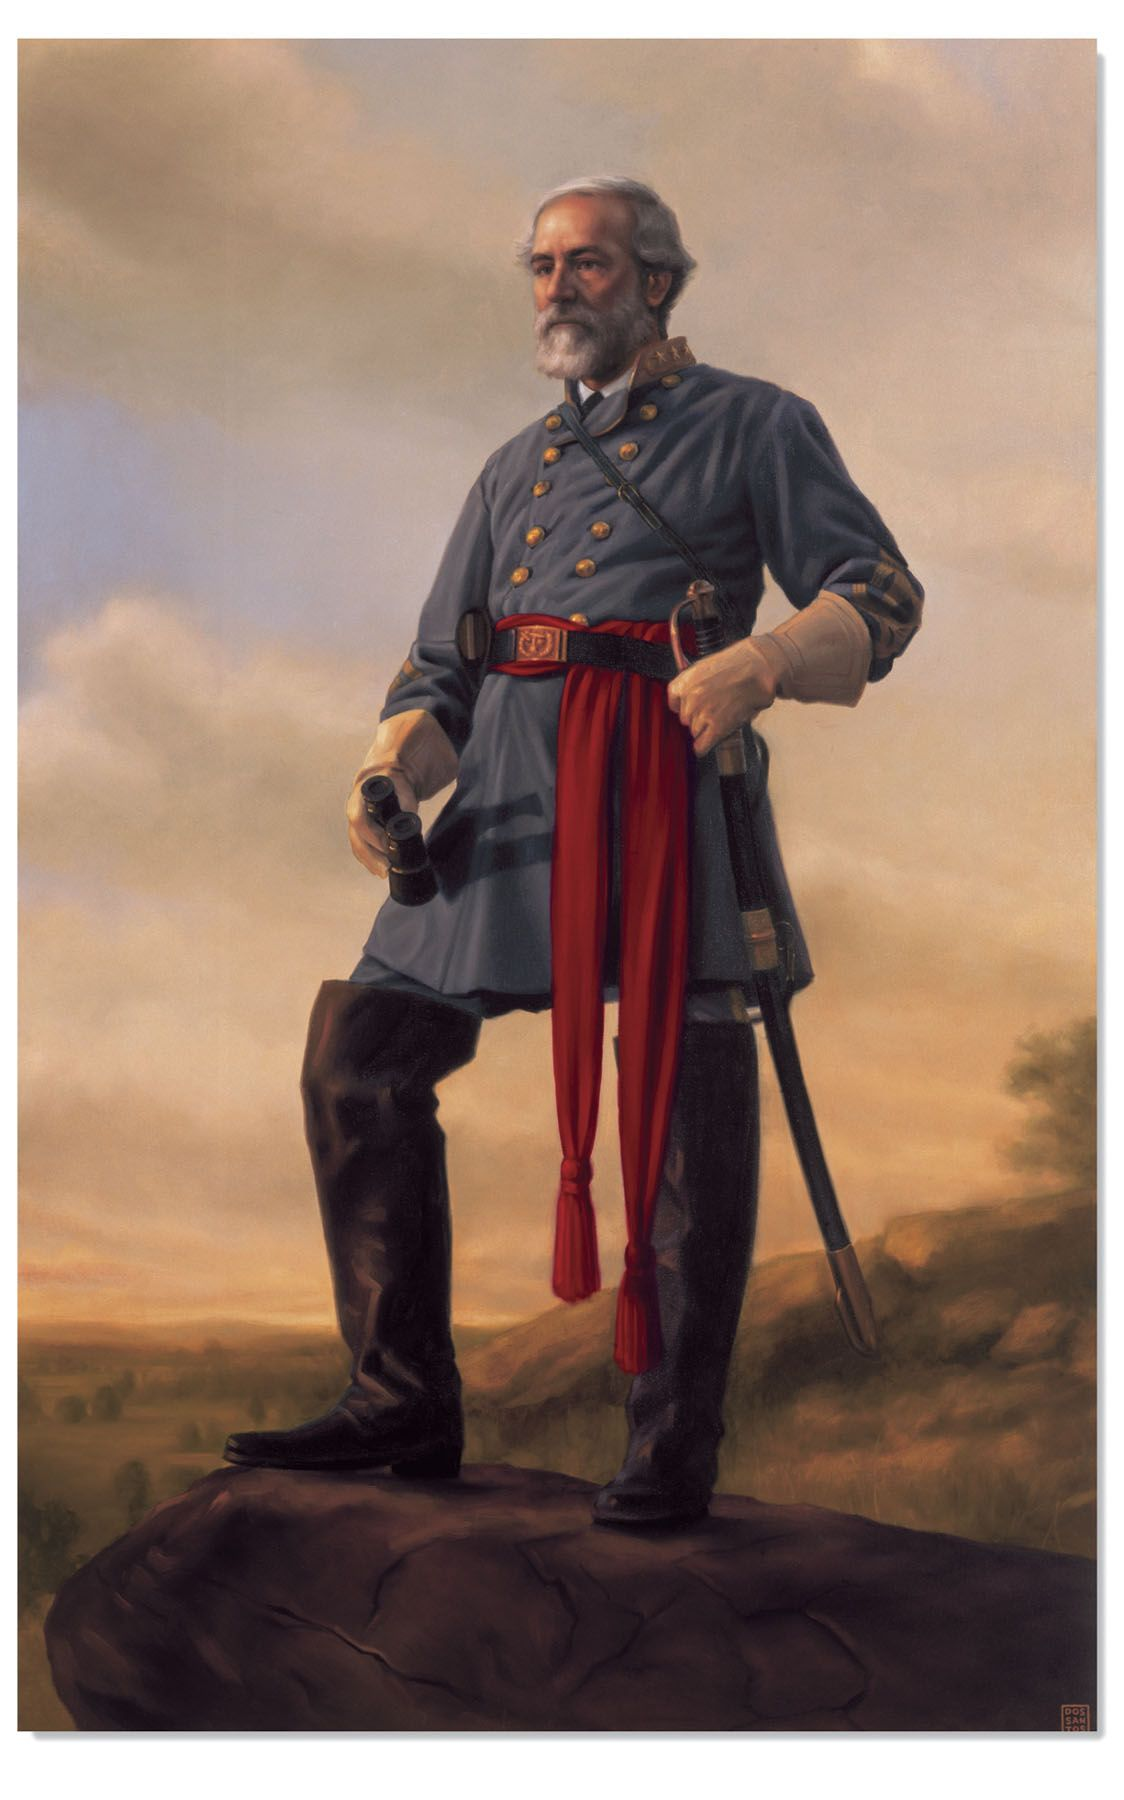 an essay on general robert e lee Robert e lee essays robert e lee, who was considered to be the greatest soldier fighting for the confederate states of america, descended from a long line of famous heroes.